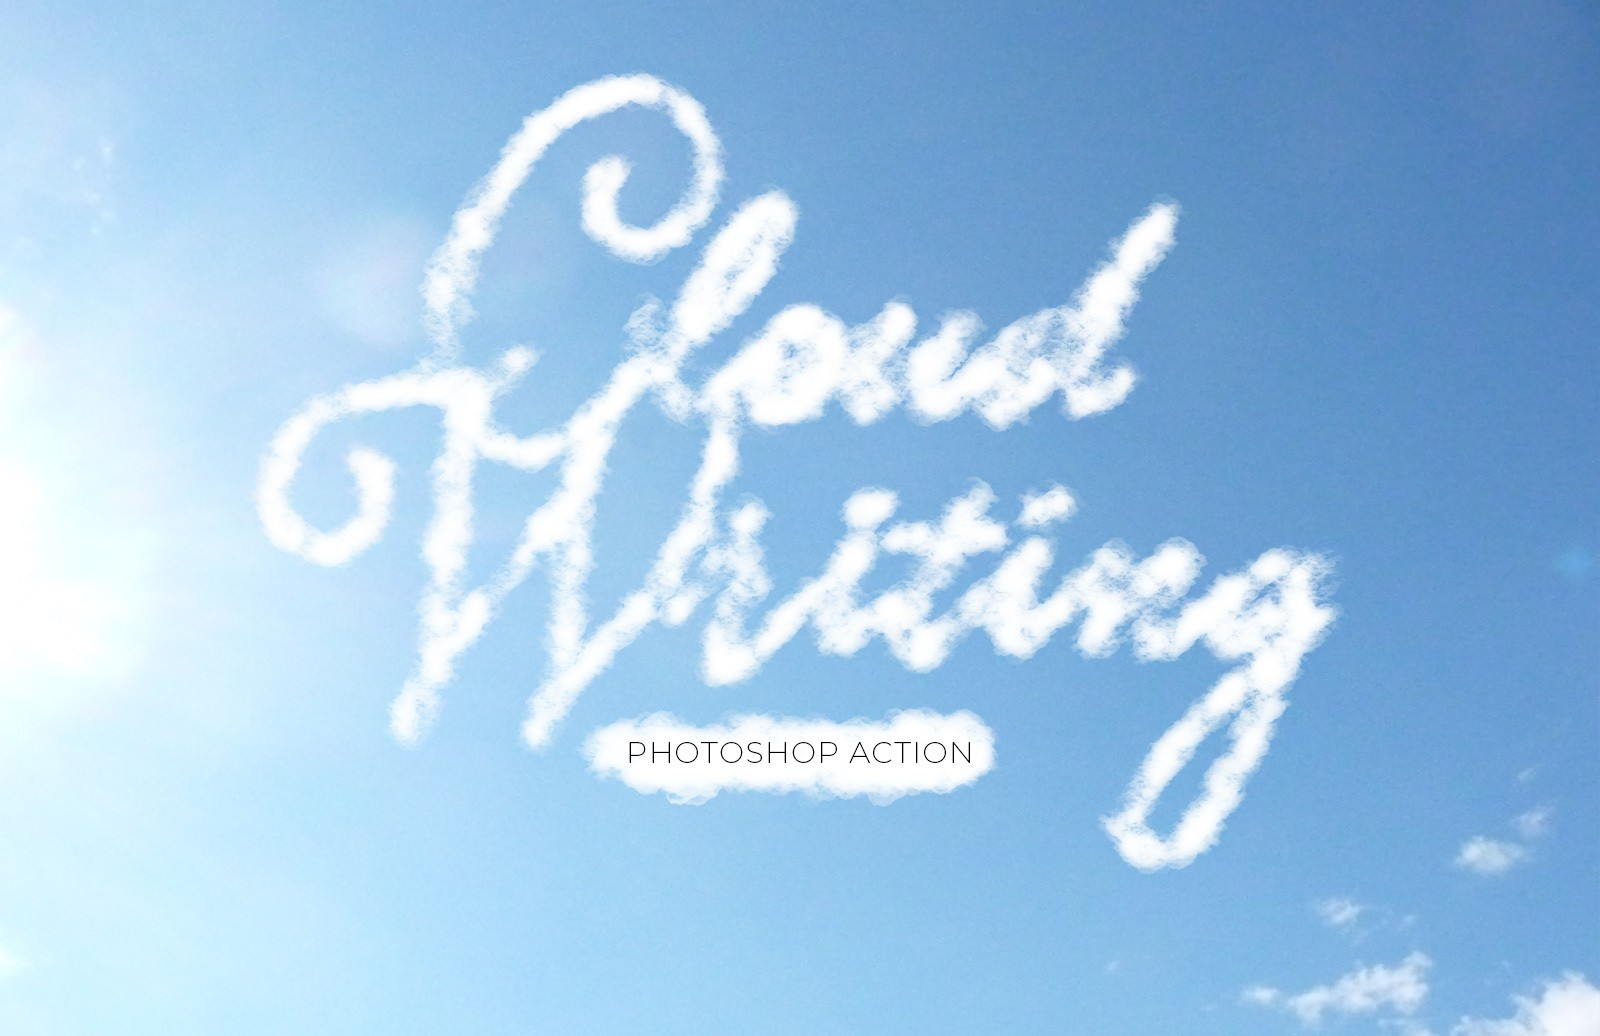 Cloud Writing Photoshop Action